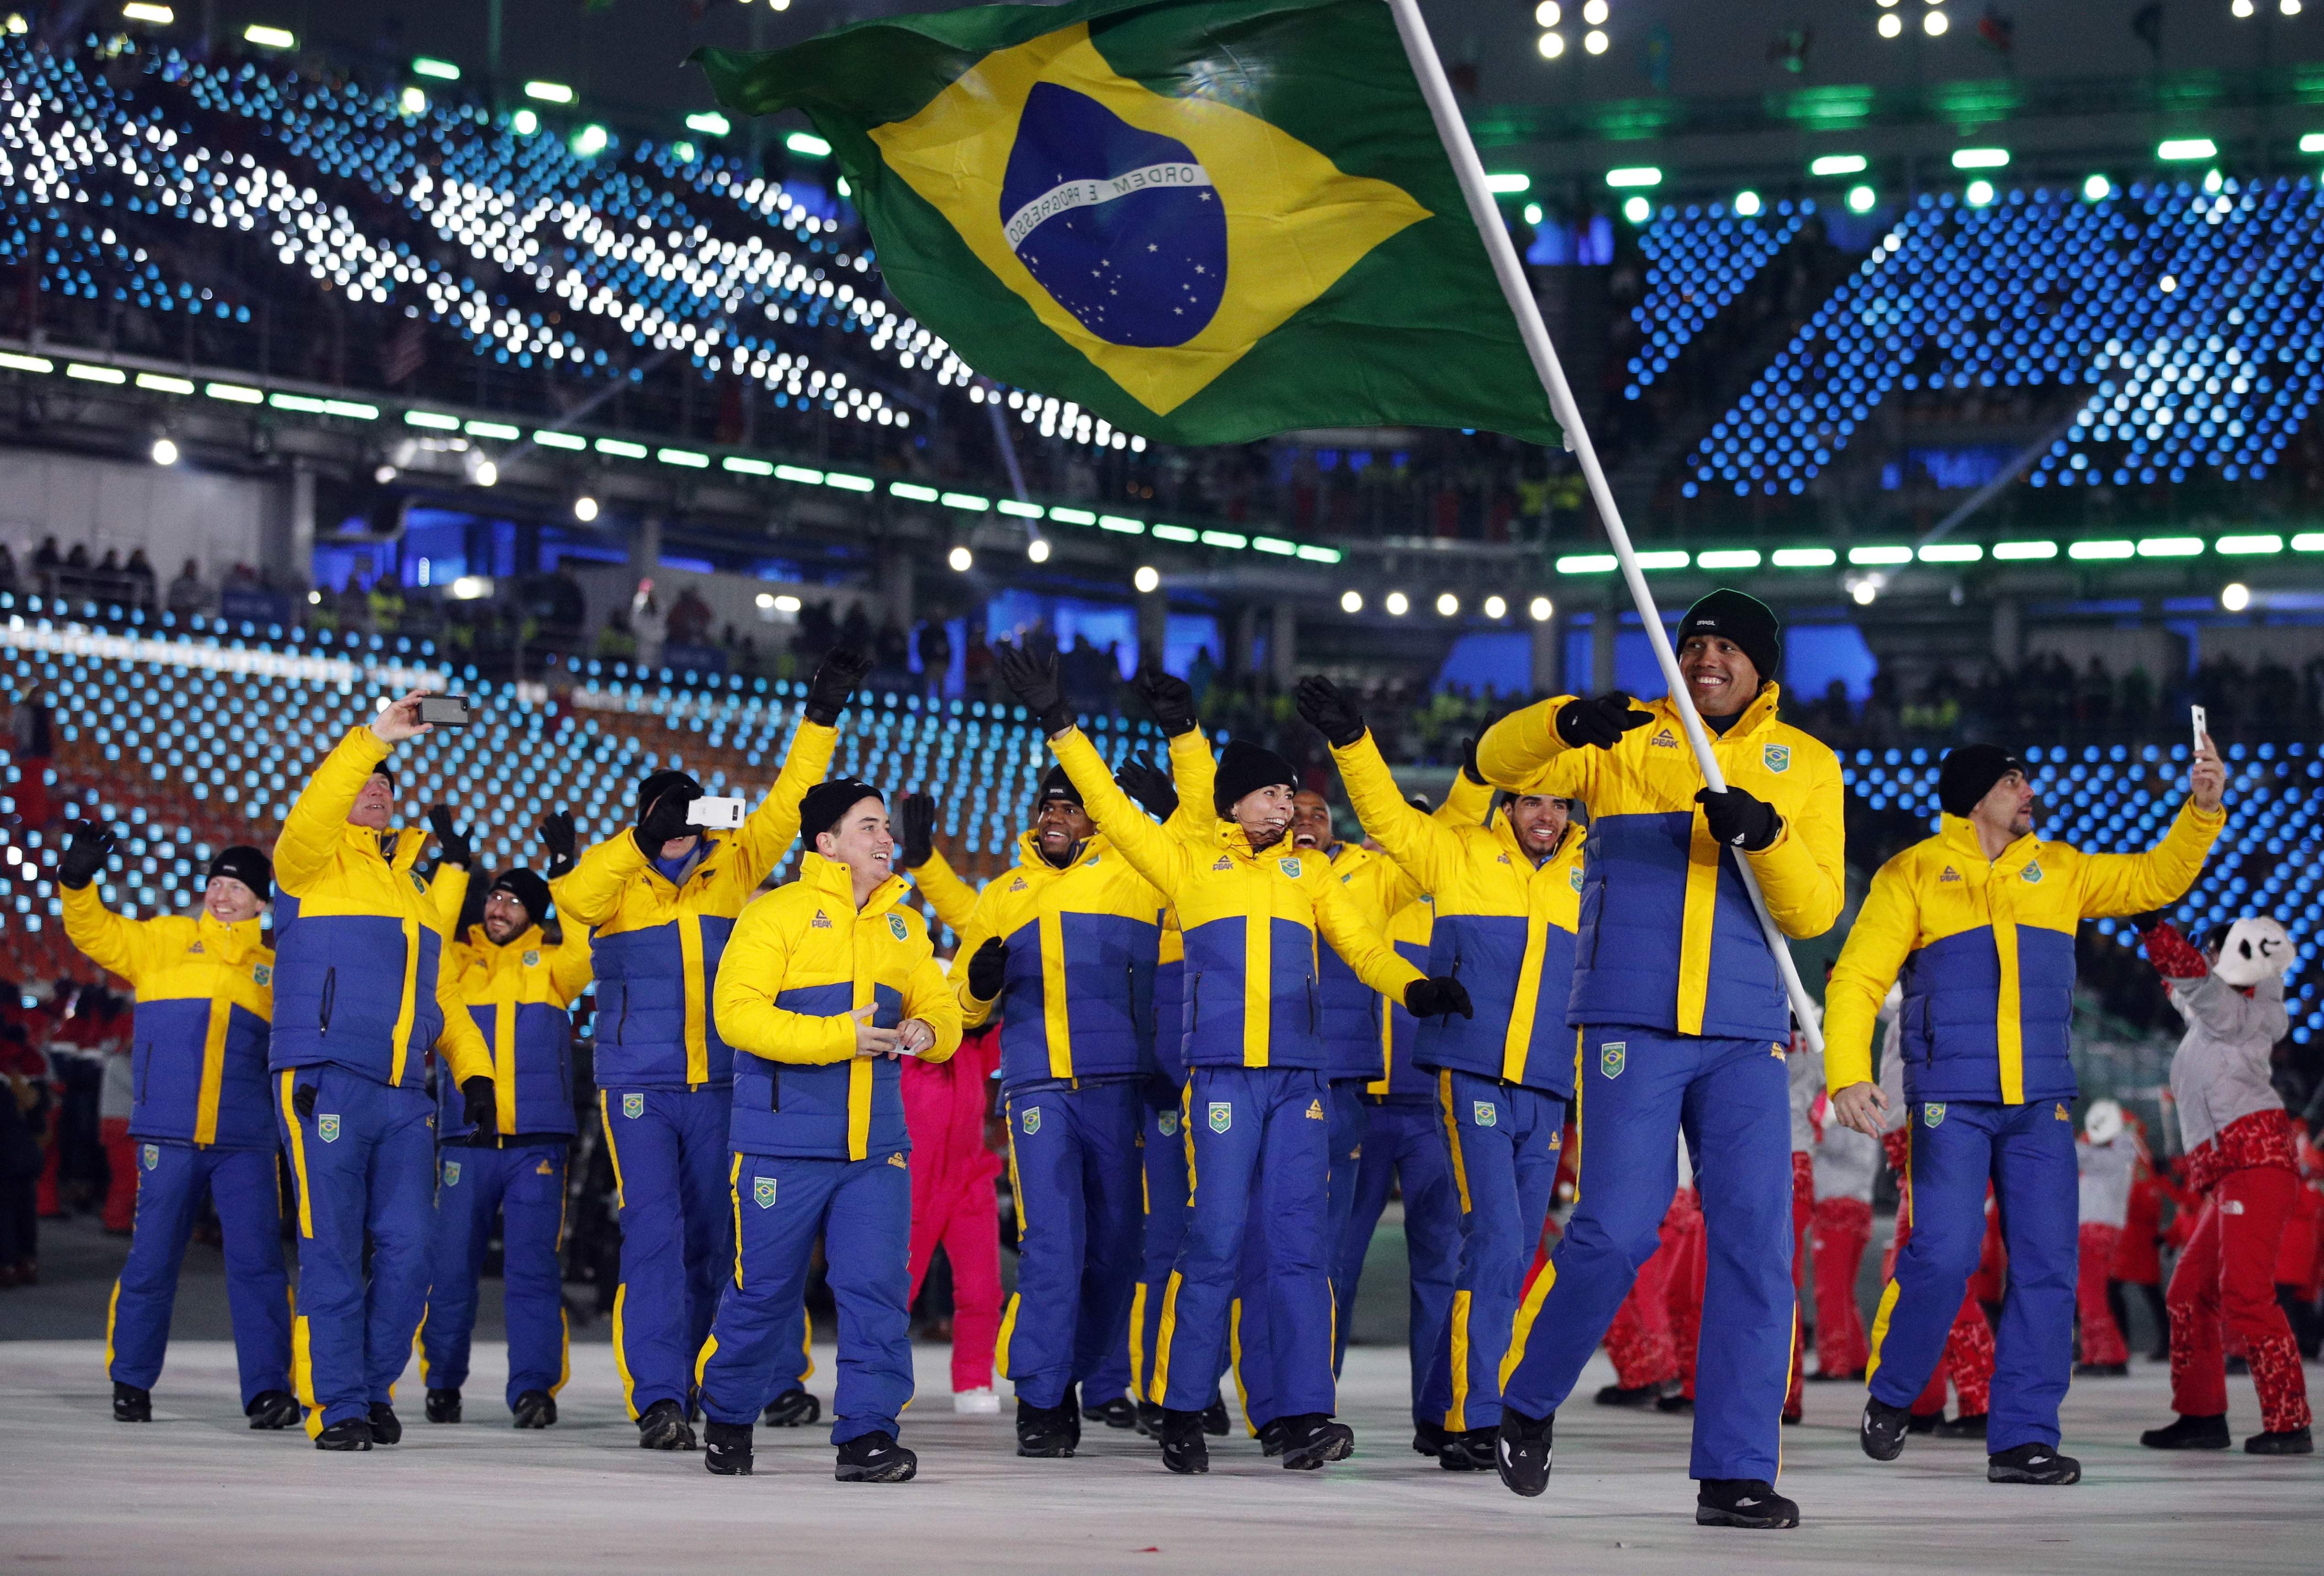 Edson Bindilatti carries the flag of Brazil during the opening ceremony of the 2018 Winter Olympics in Pyeongchang, South Korea, Friday, Feb. 9, 2018. (AP Photo/Jae C. Hong)